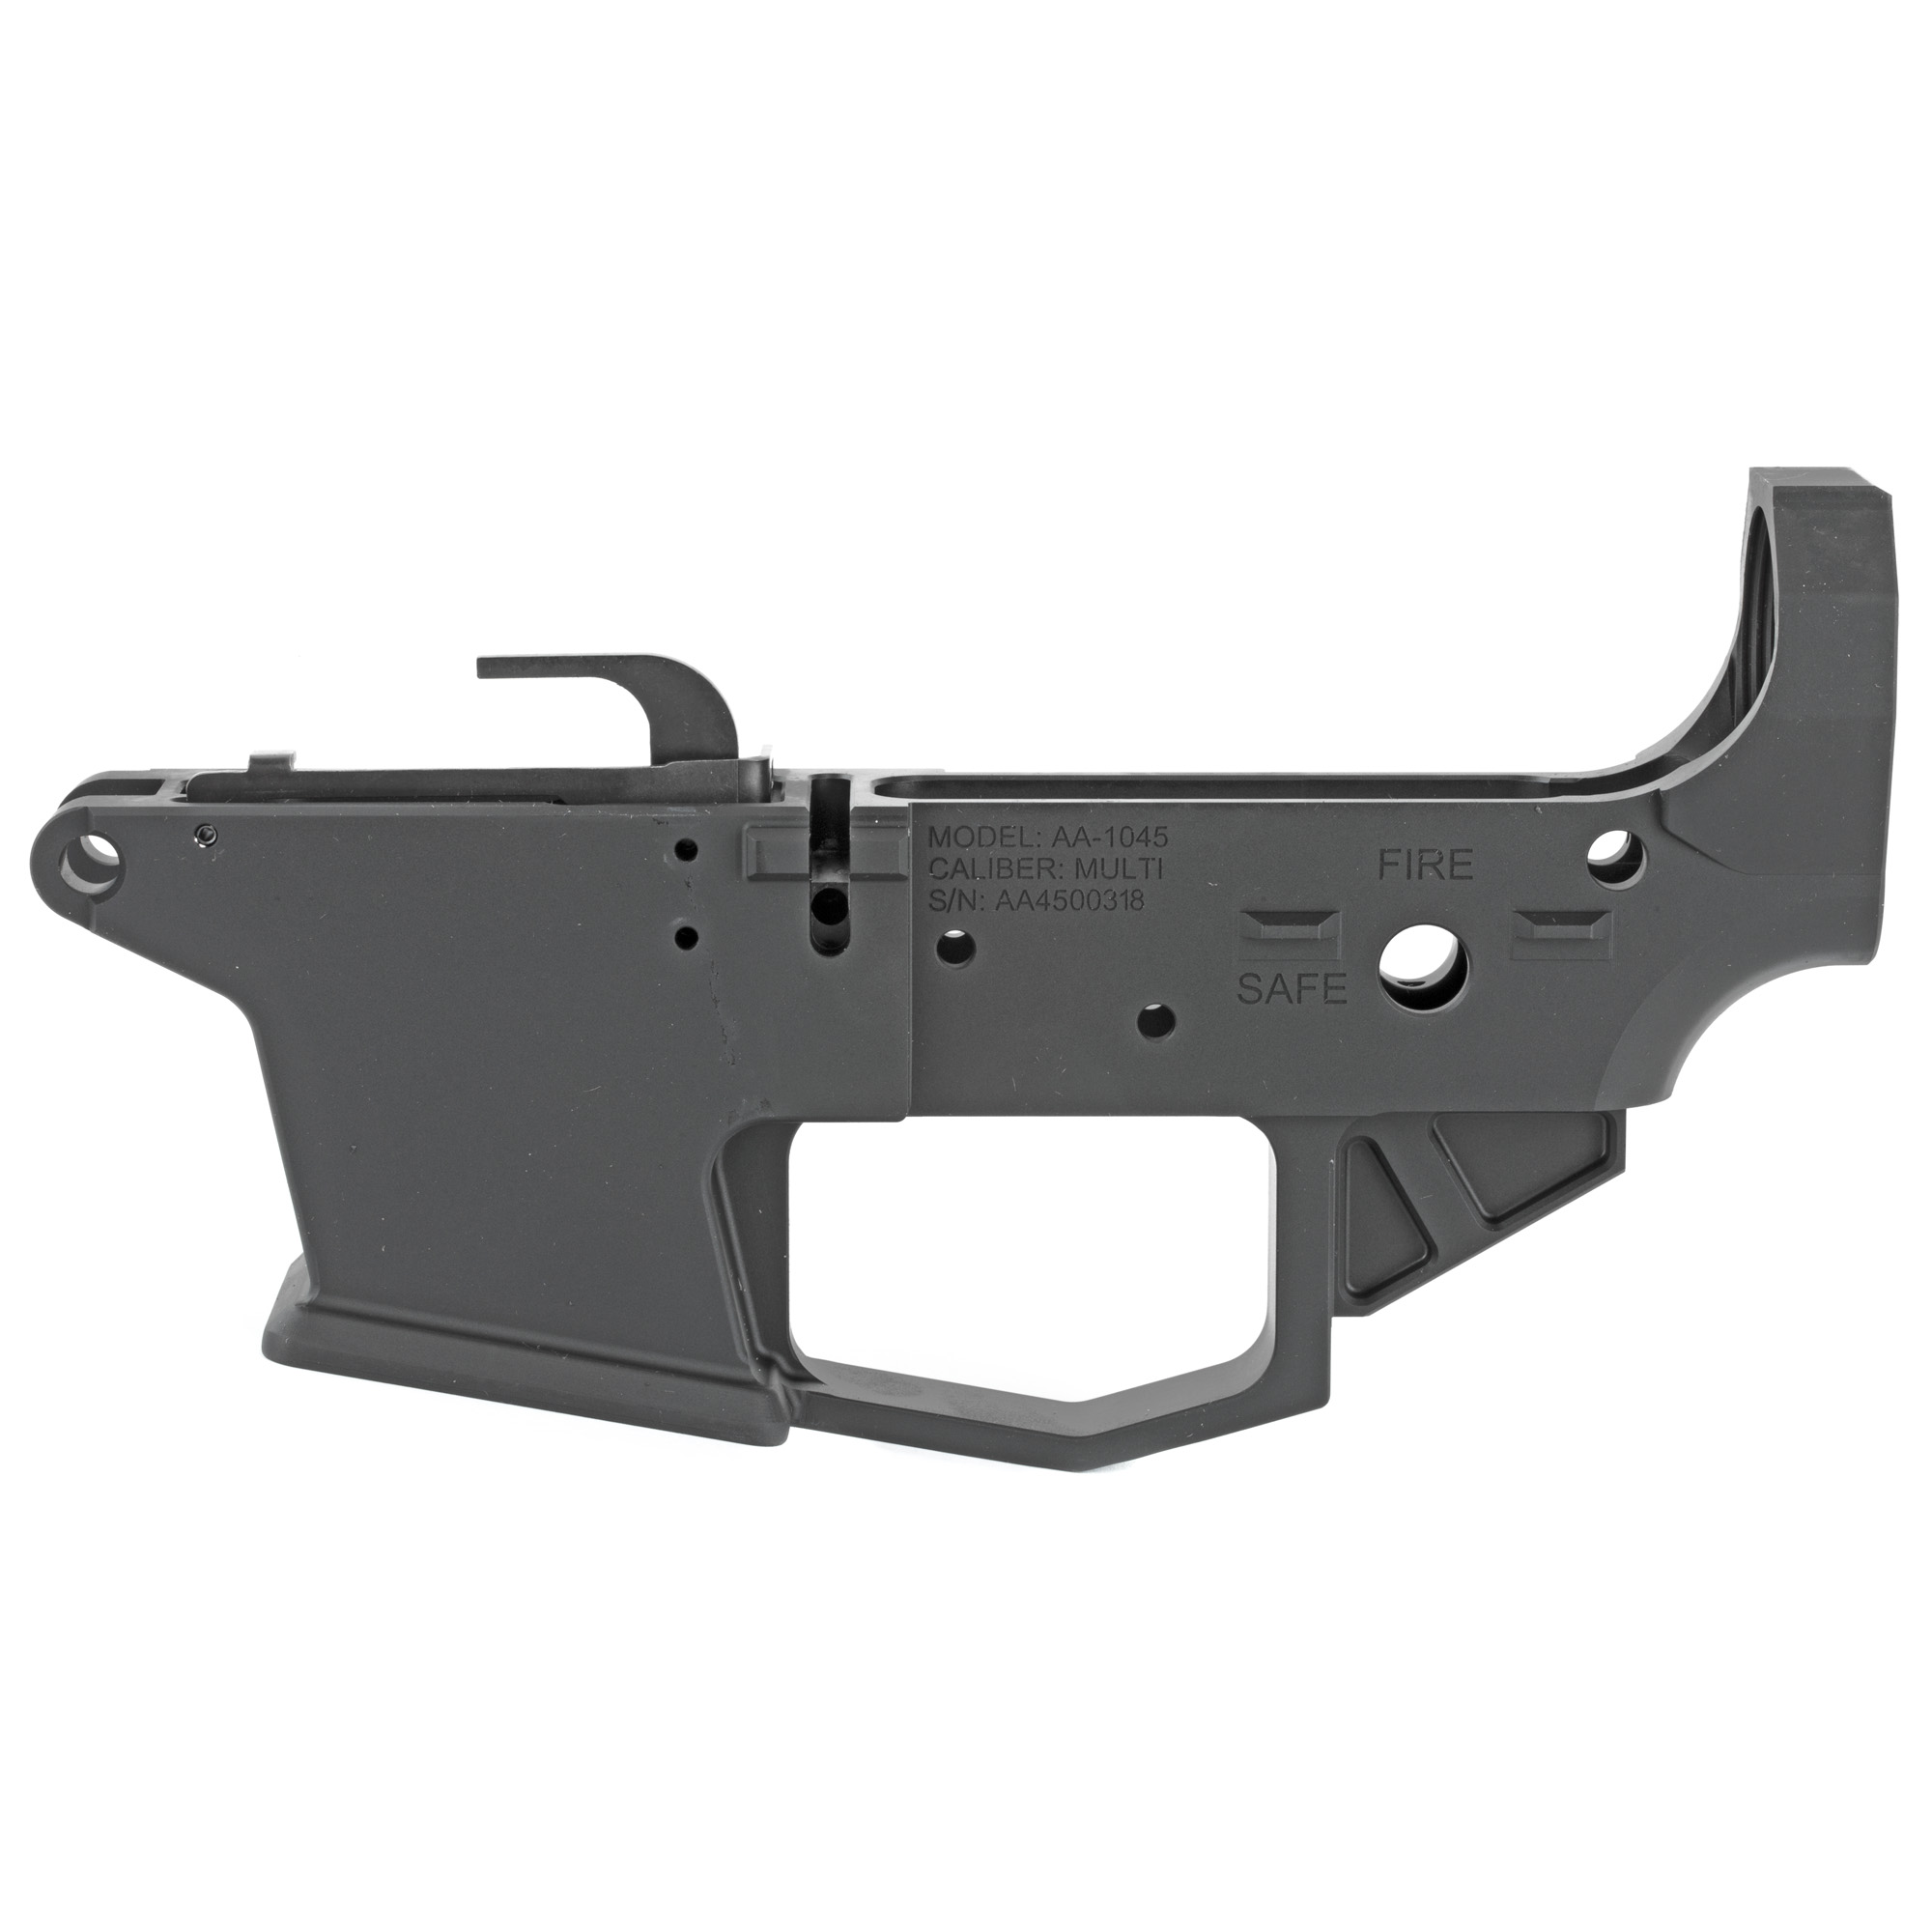 """The Angstadt Arms 1045 lower receiver set is the foundation of a quality pistol caliber AR-15. Machined from a solid block of 7075-T6 billet aluminum"""" the 1045 lower receiver is compatible with 45ACP and 10mm GLOCK magazines. Featuring standard AR-15 controls and accepting most aftermarket Mil-Spec components"""" the 1045 is instantly familiar to anyone experienced with the AR-15/M4 platform. To aid in reloads"""" the receiver features a flared magazine well and last round bolt hold open design which locks the bolt open on an empty magazine. The lower receiver can be completed with standard mil-spec components."""